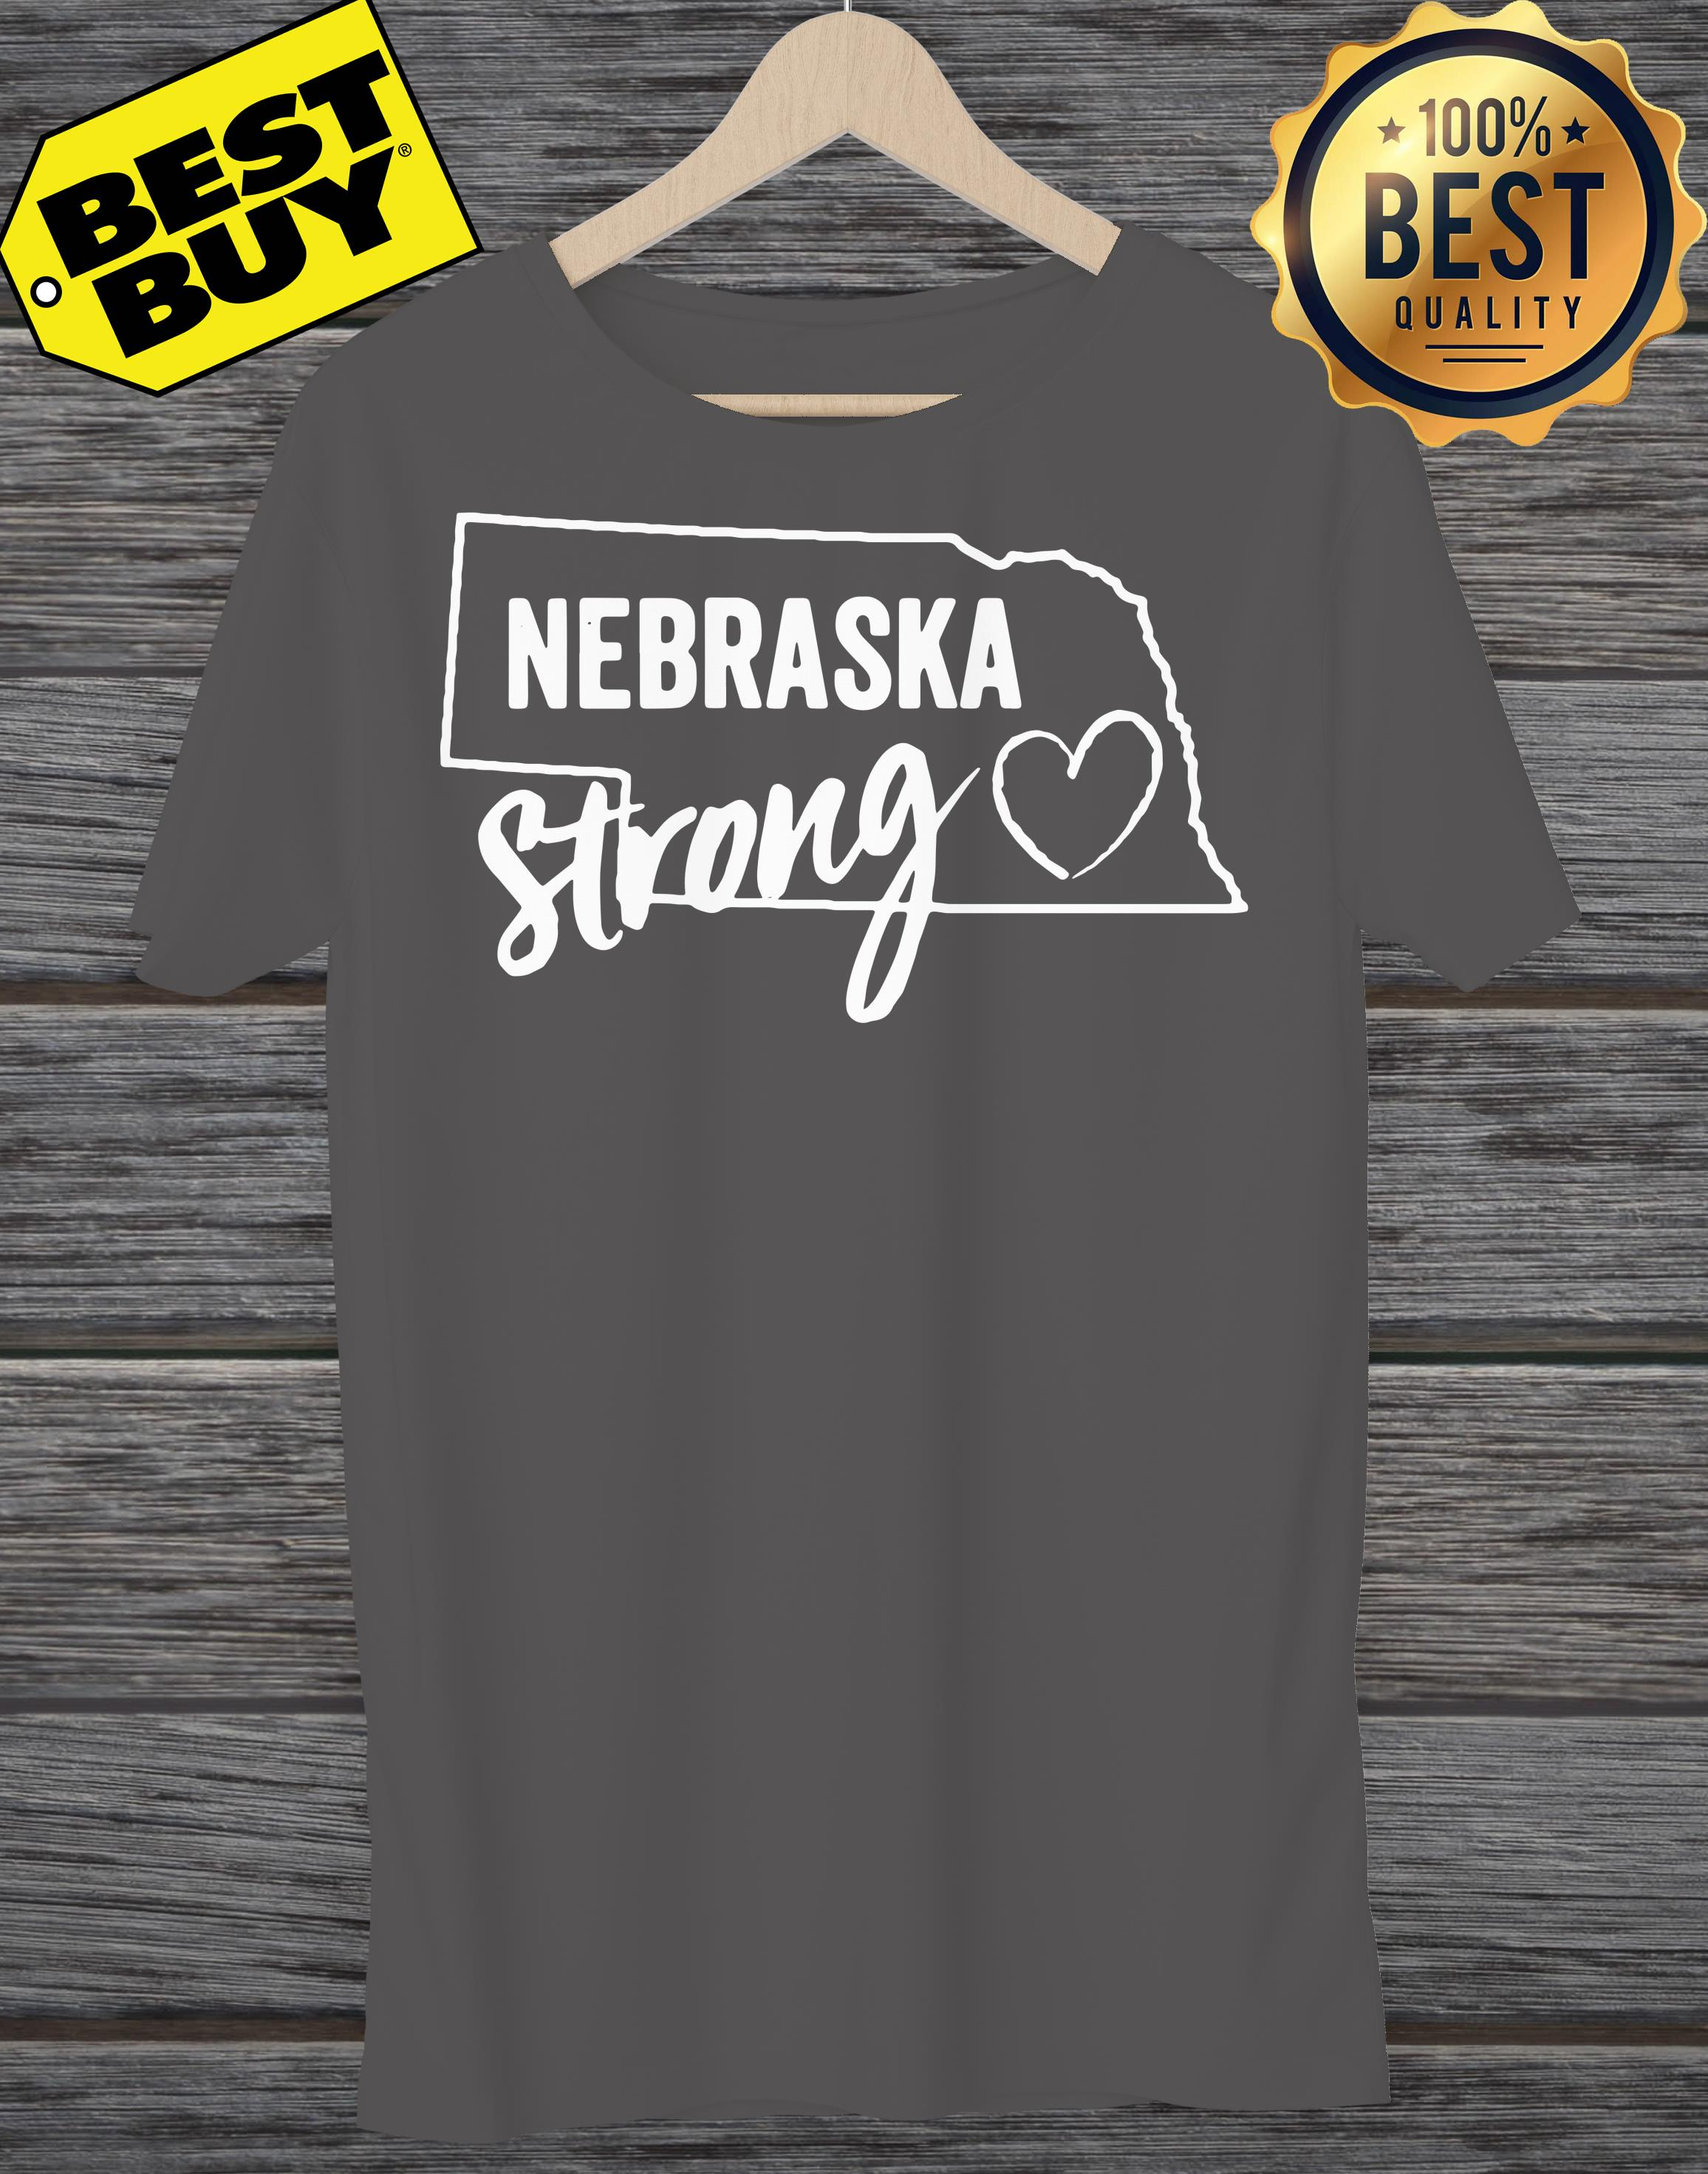 Flood relief Nebraska strong ladies tee